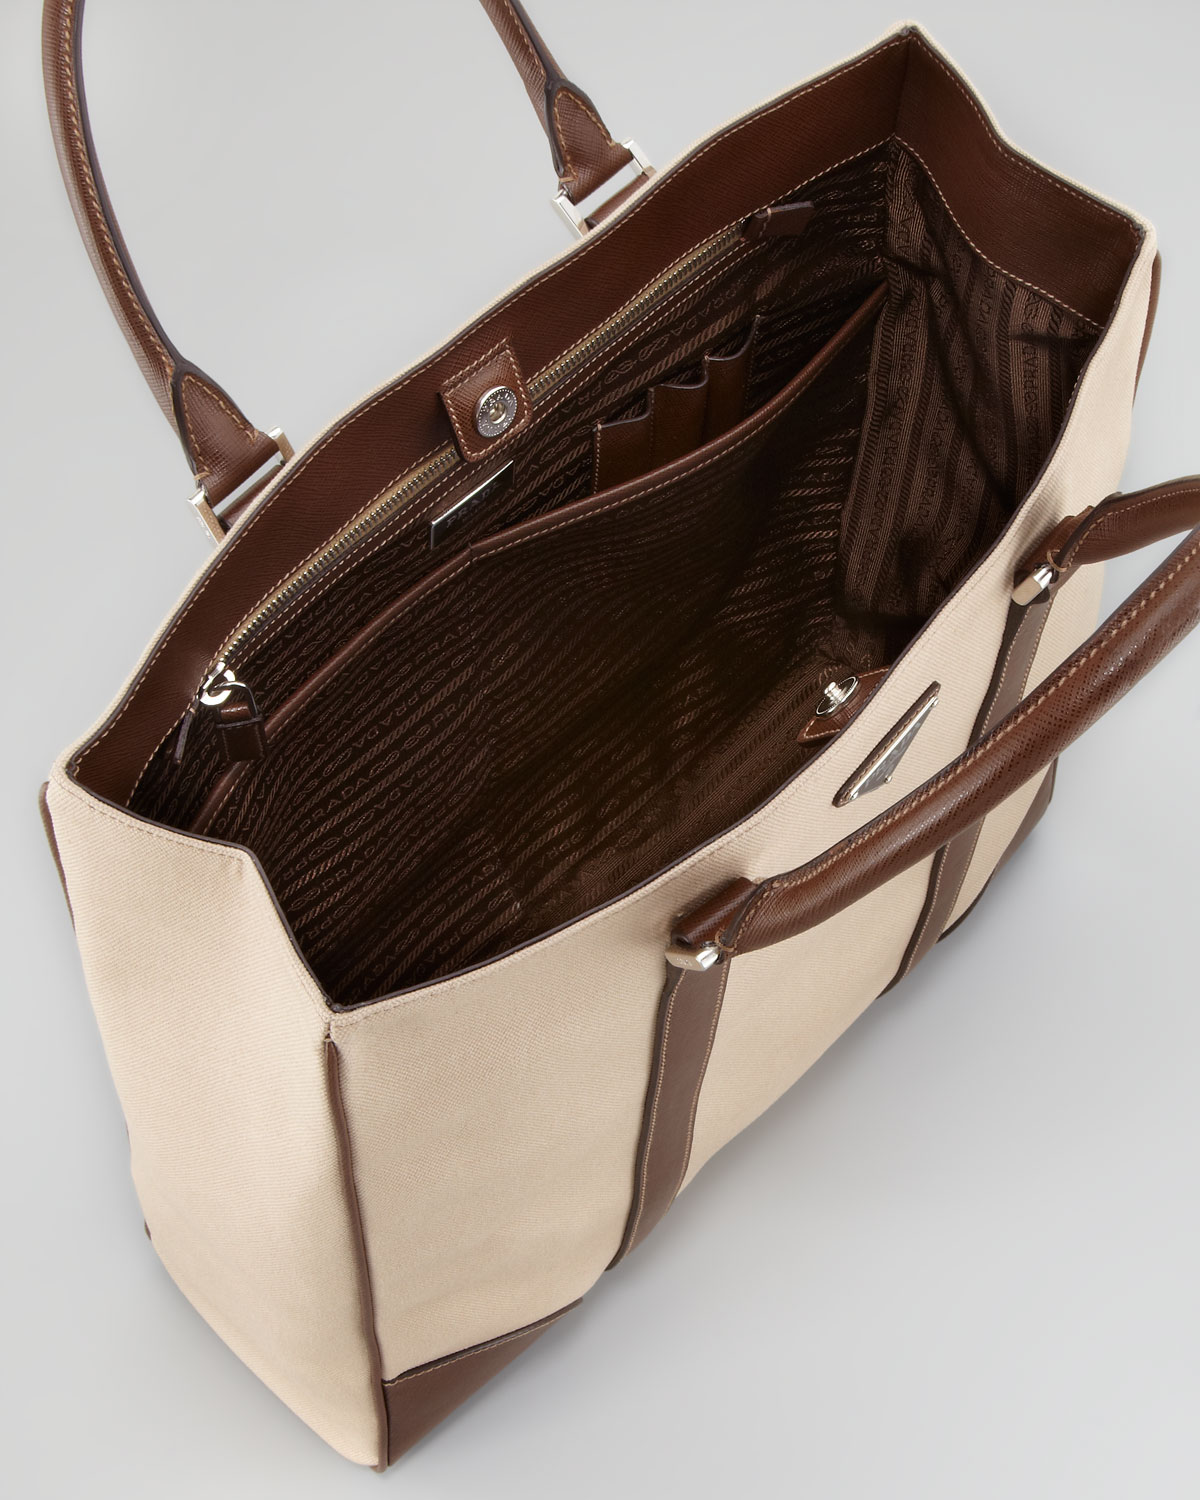 Lyst - Prada Canvas Leather Tote Bag in Natural for Men 179cd97c19